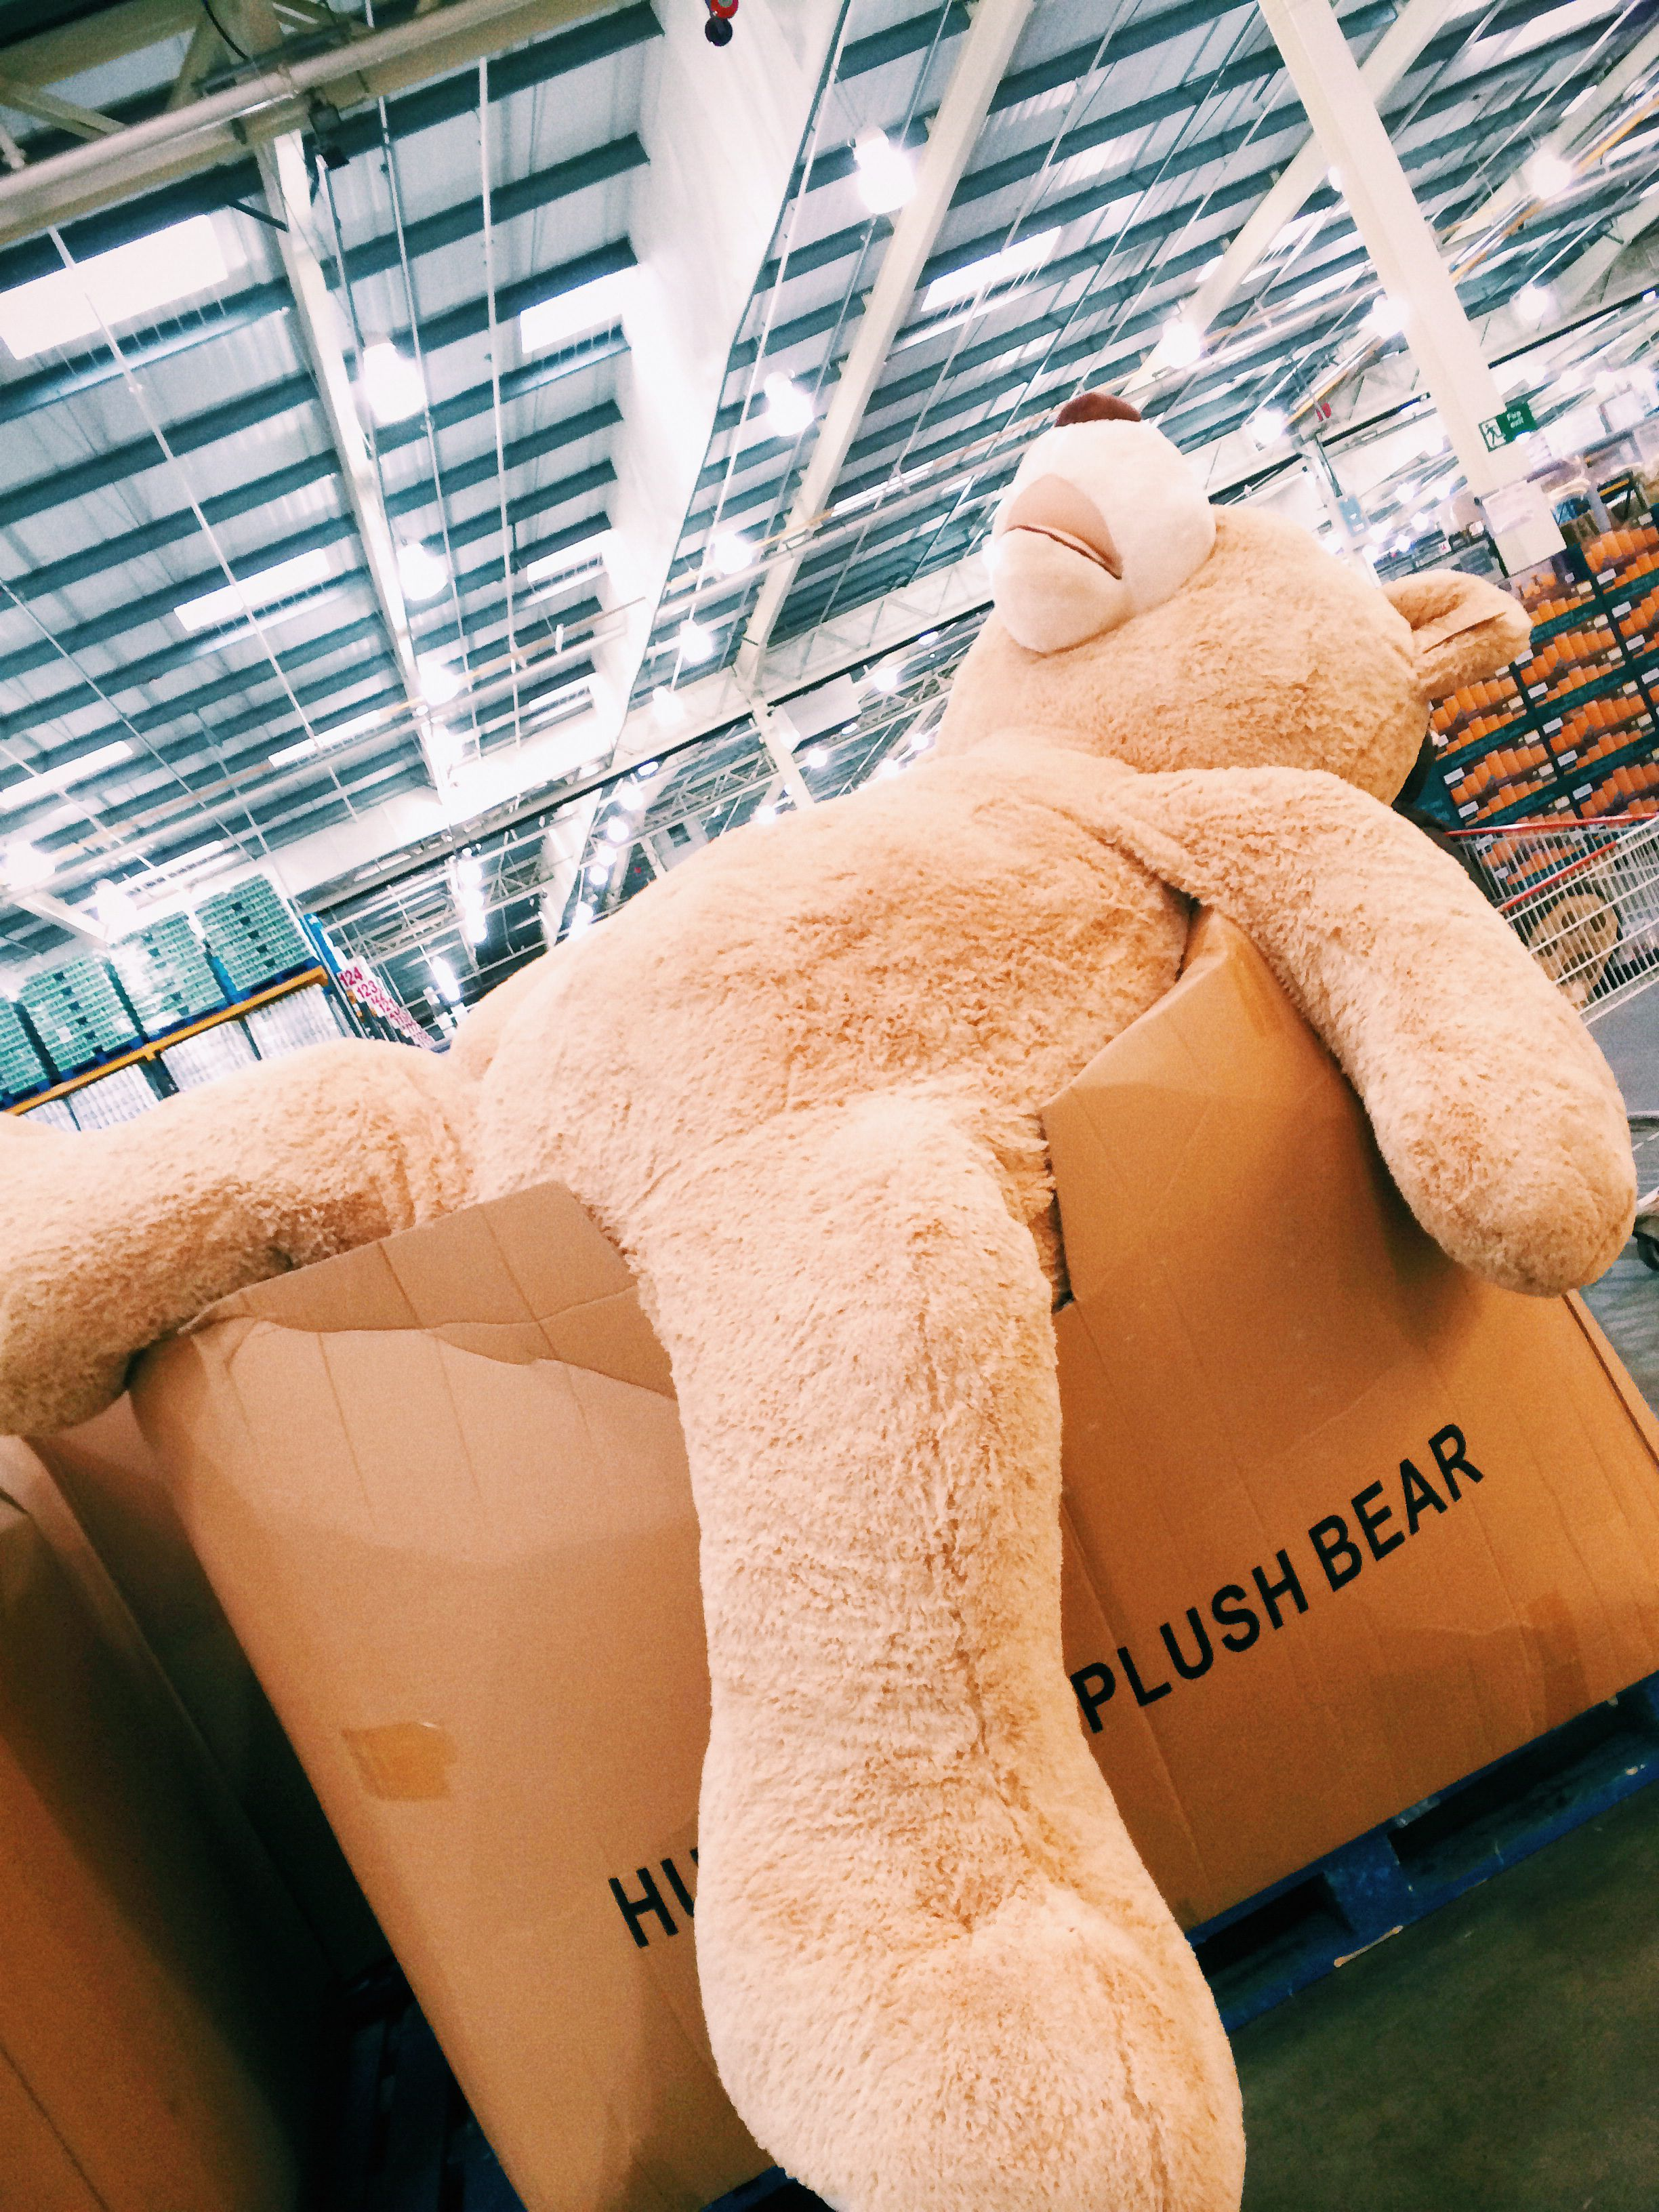 Costco teddy bear available from